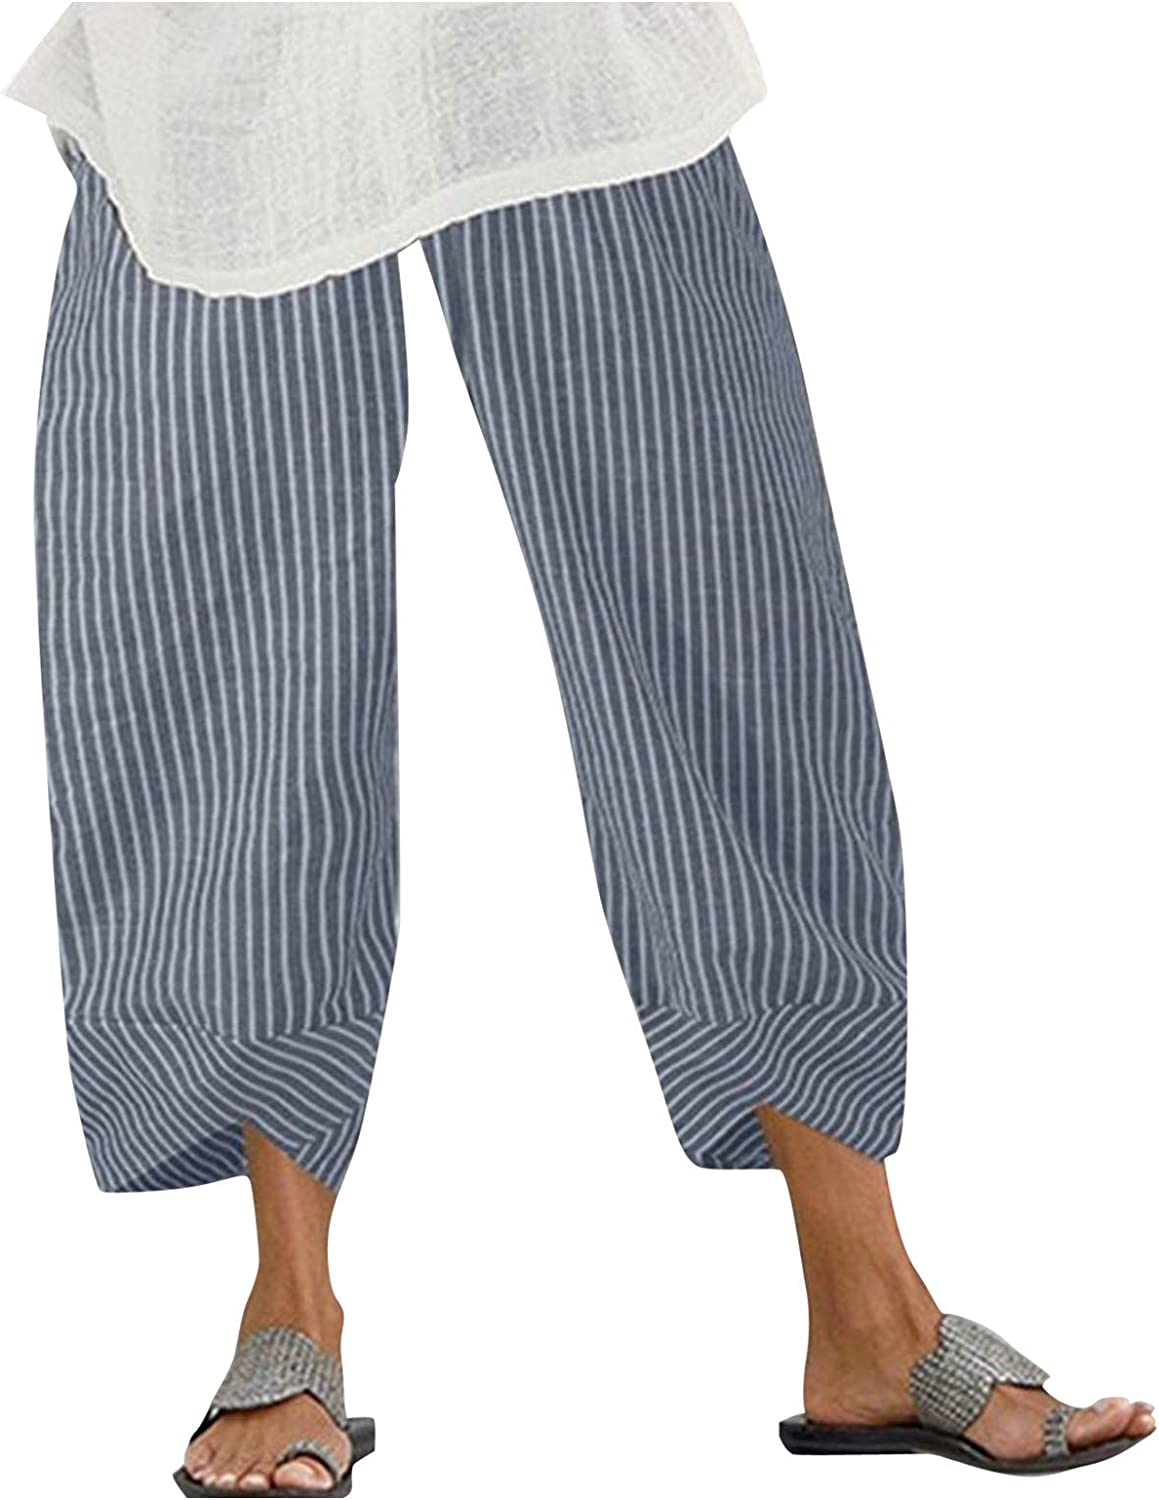 Houshelp Womens Summer Casual Direct sale of manufacturer Ranking TOP7 Loose Boh Cotton Baggy Linen Pants